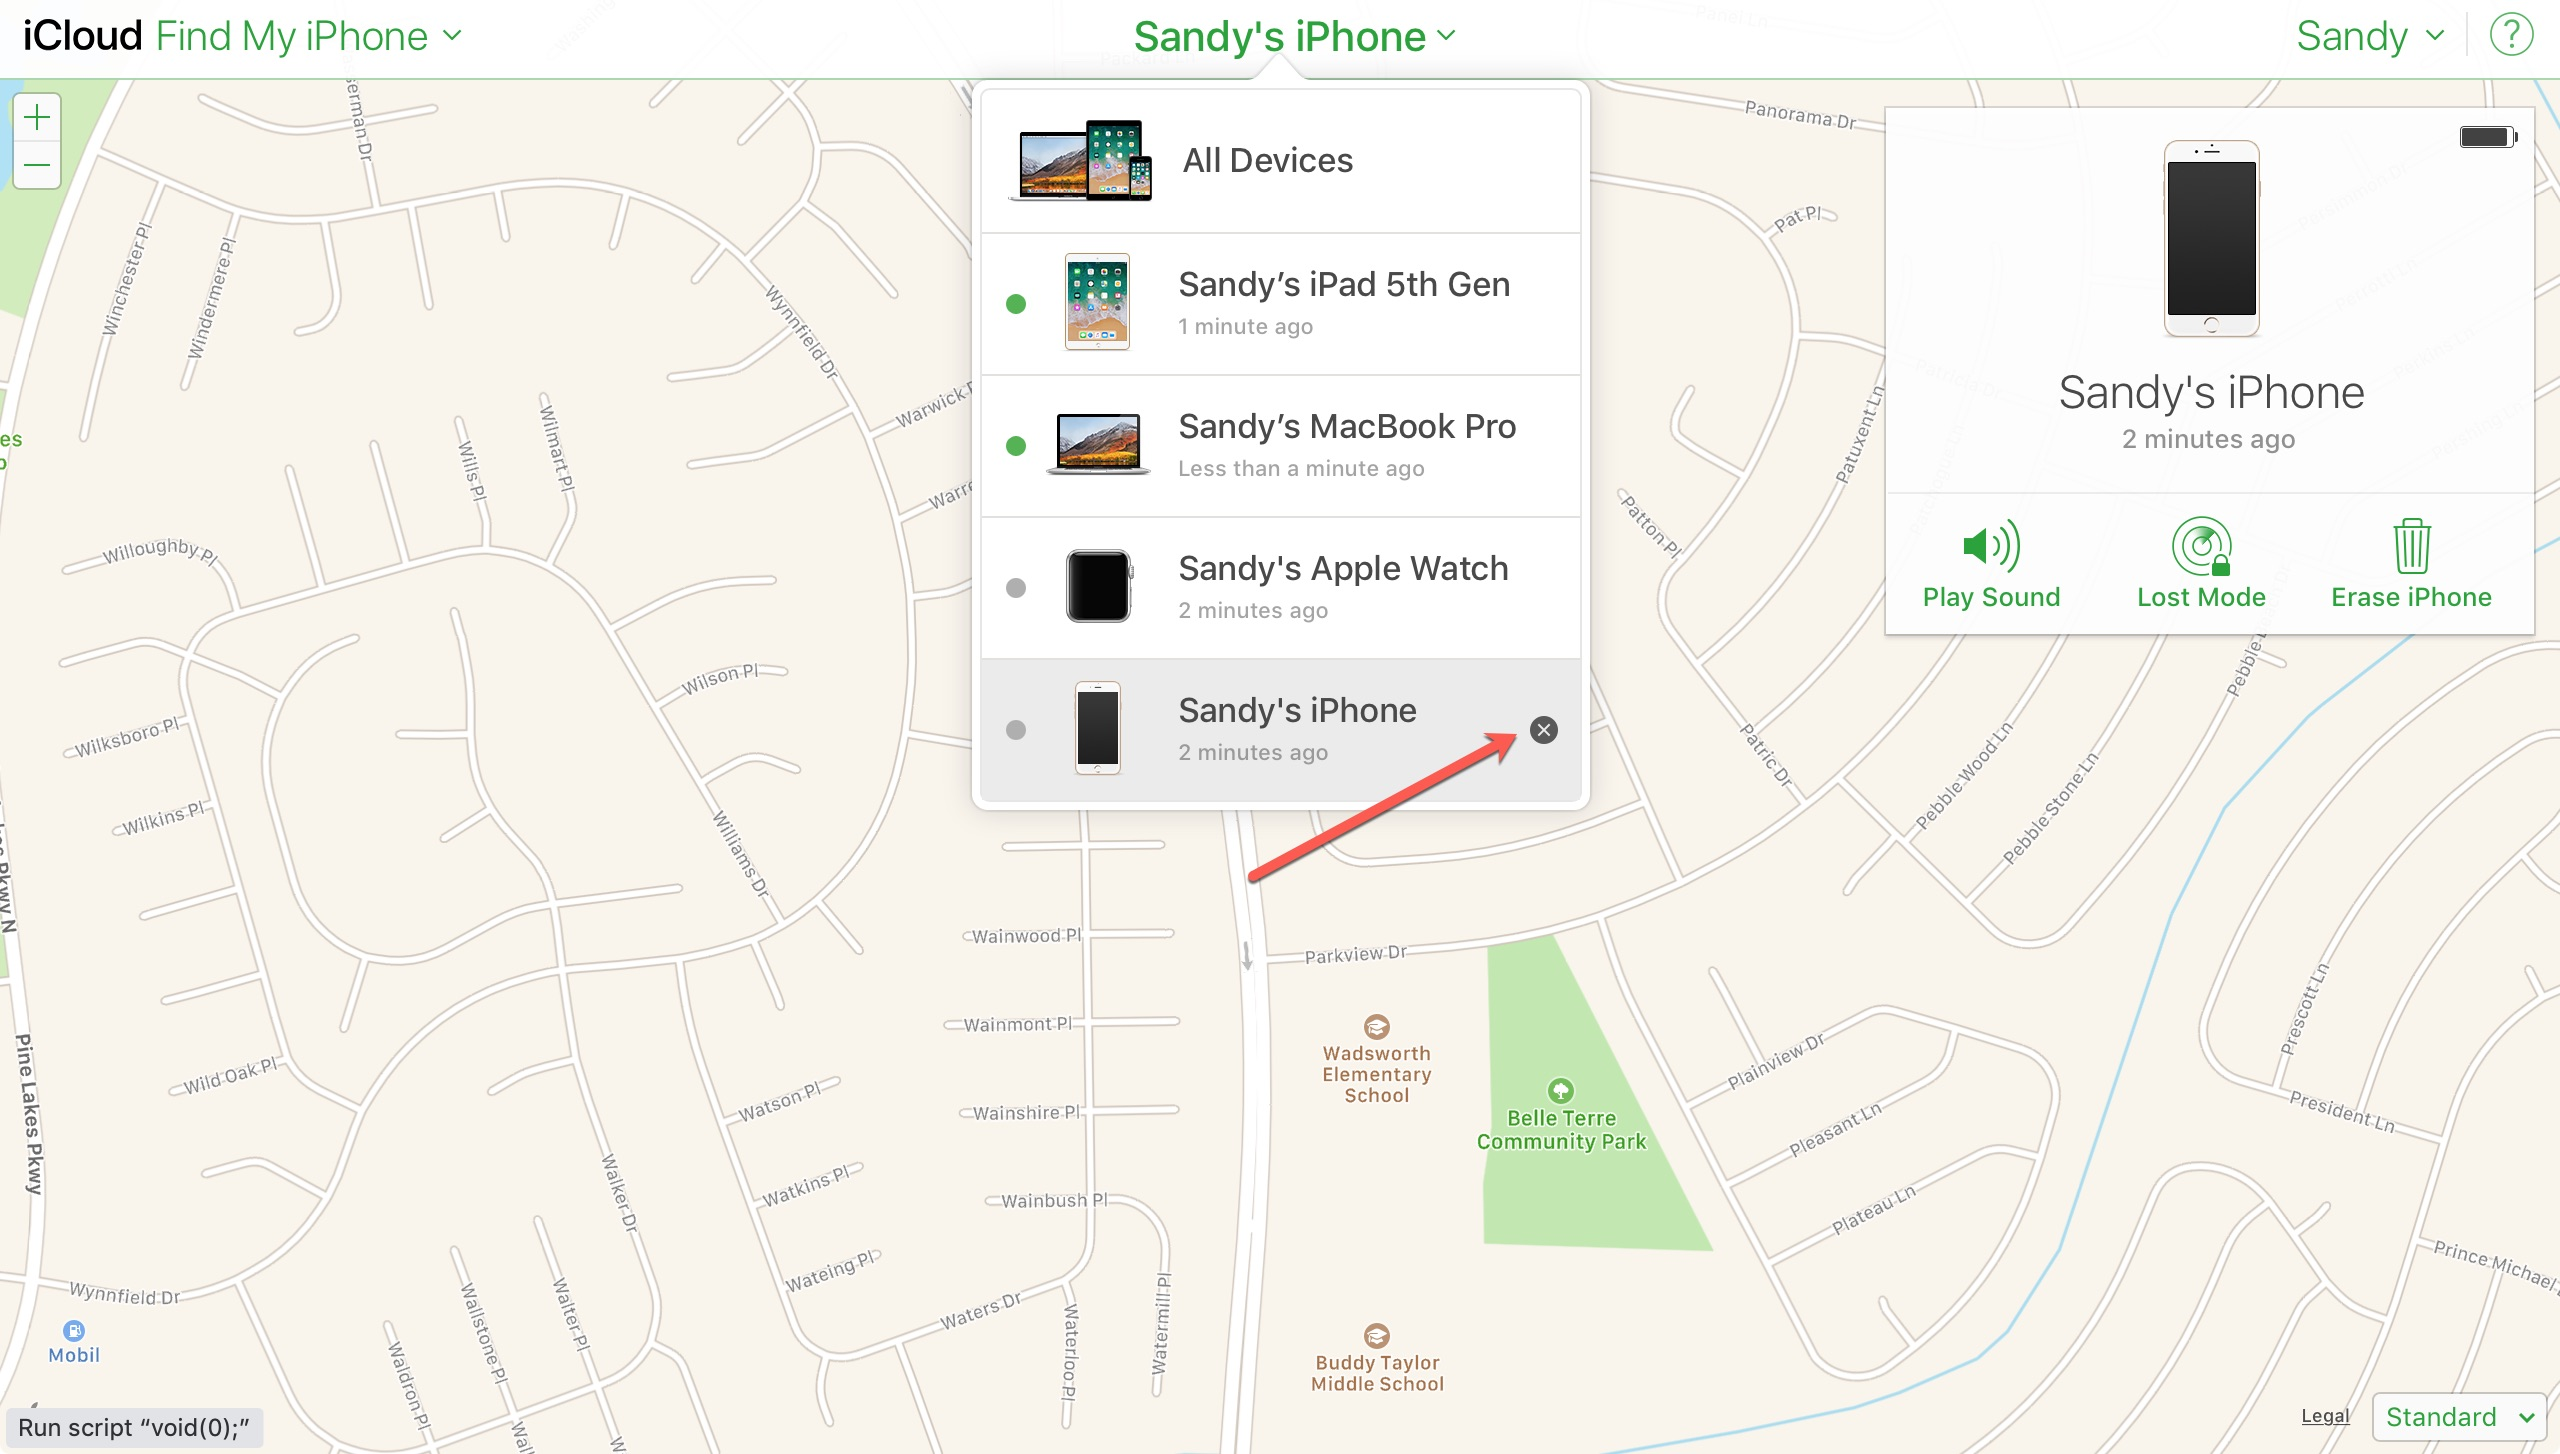 Find My iPhone on iCloudDotCom